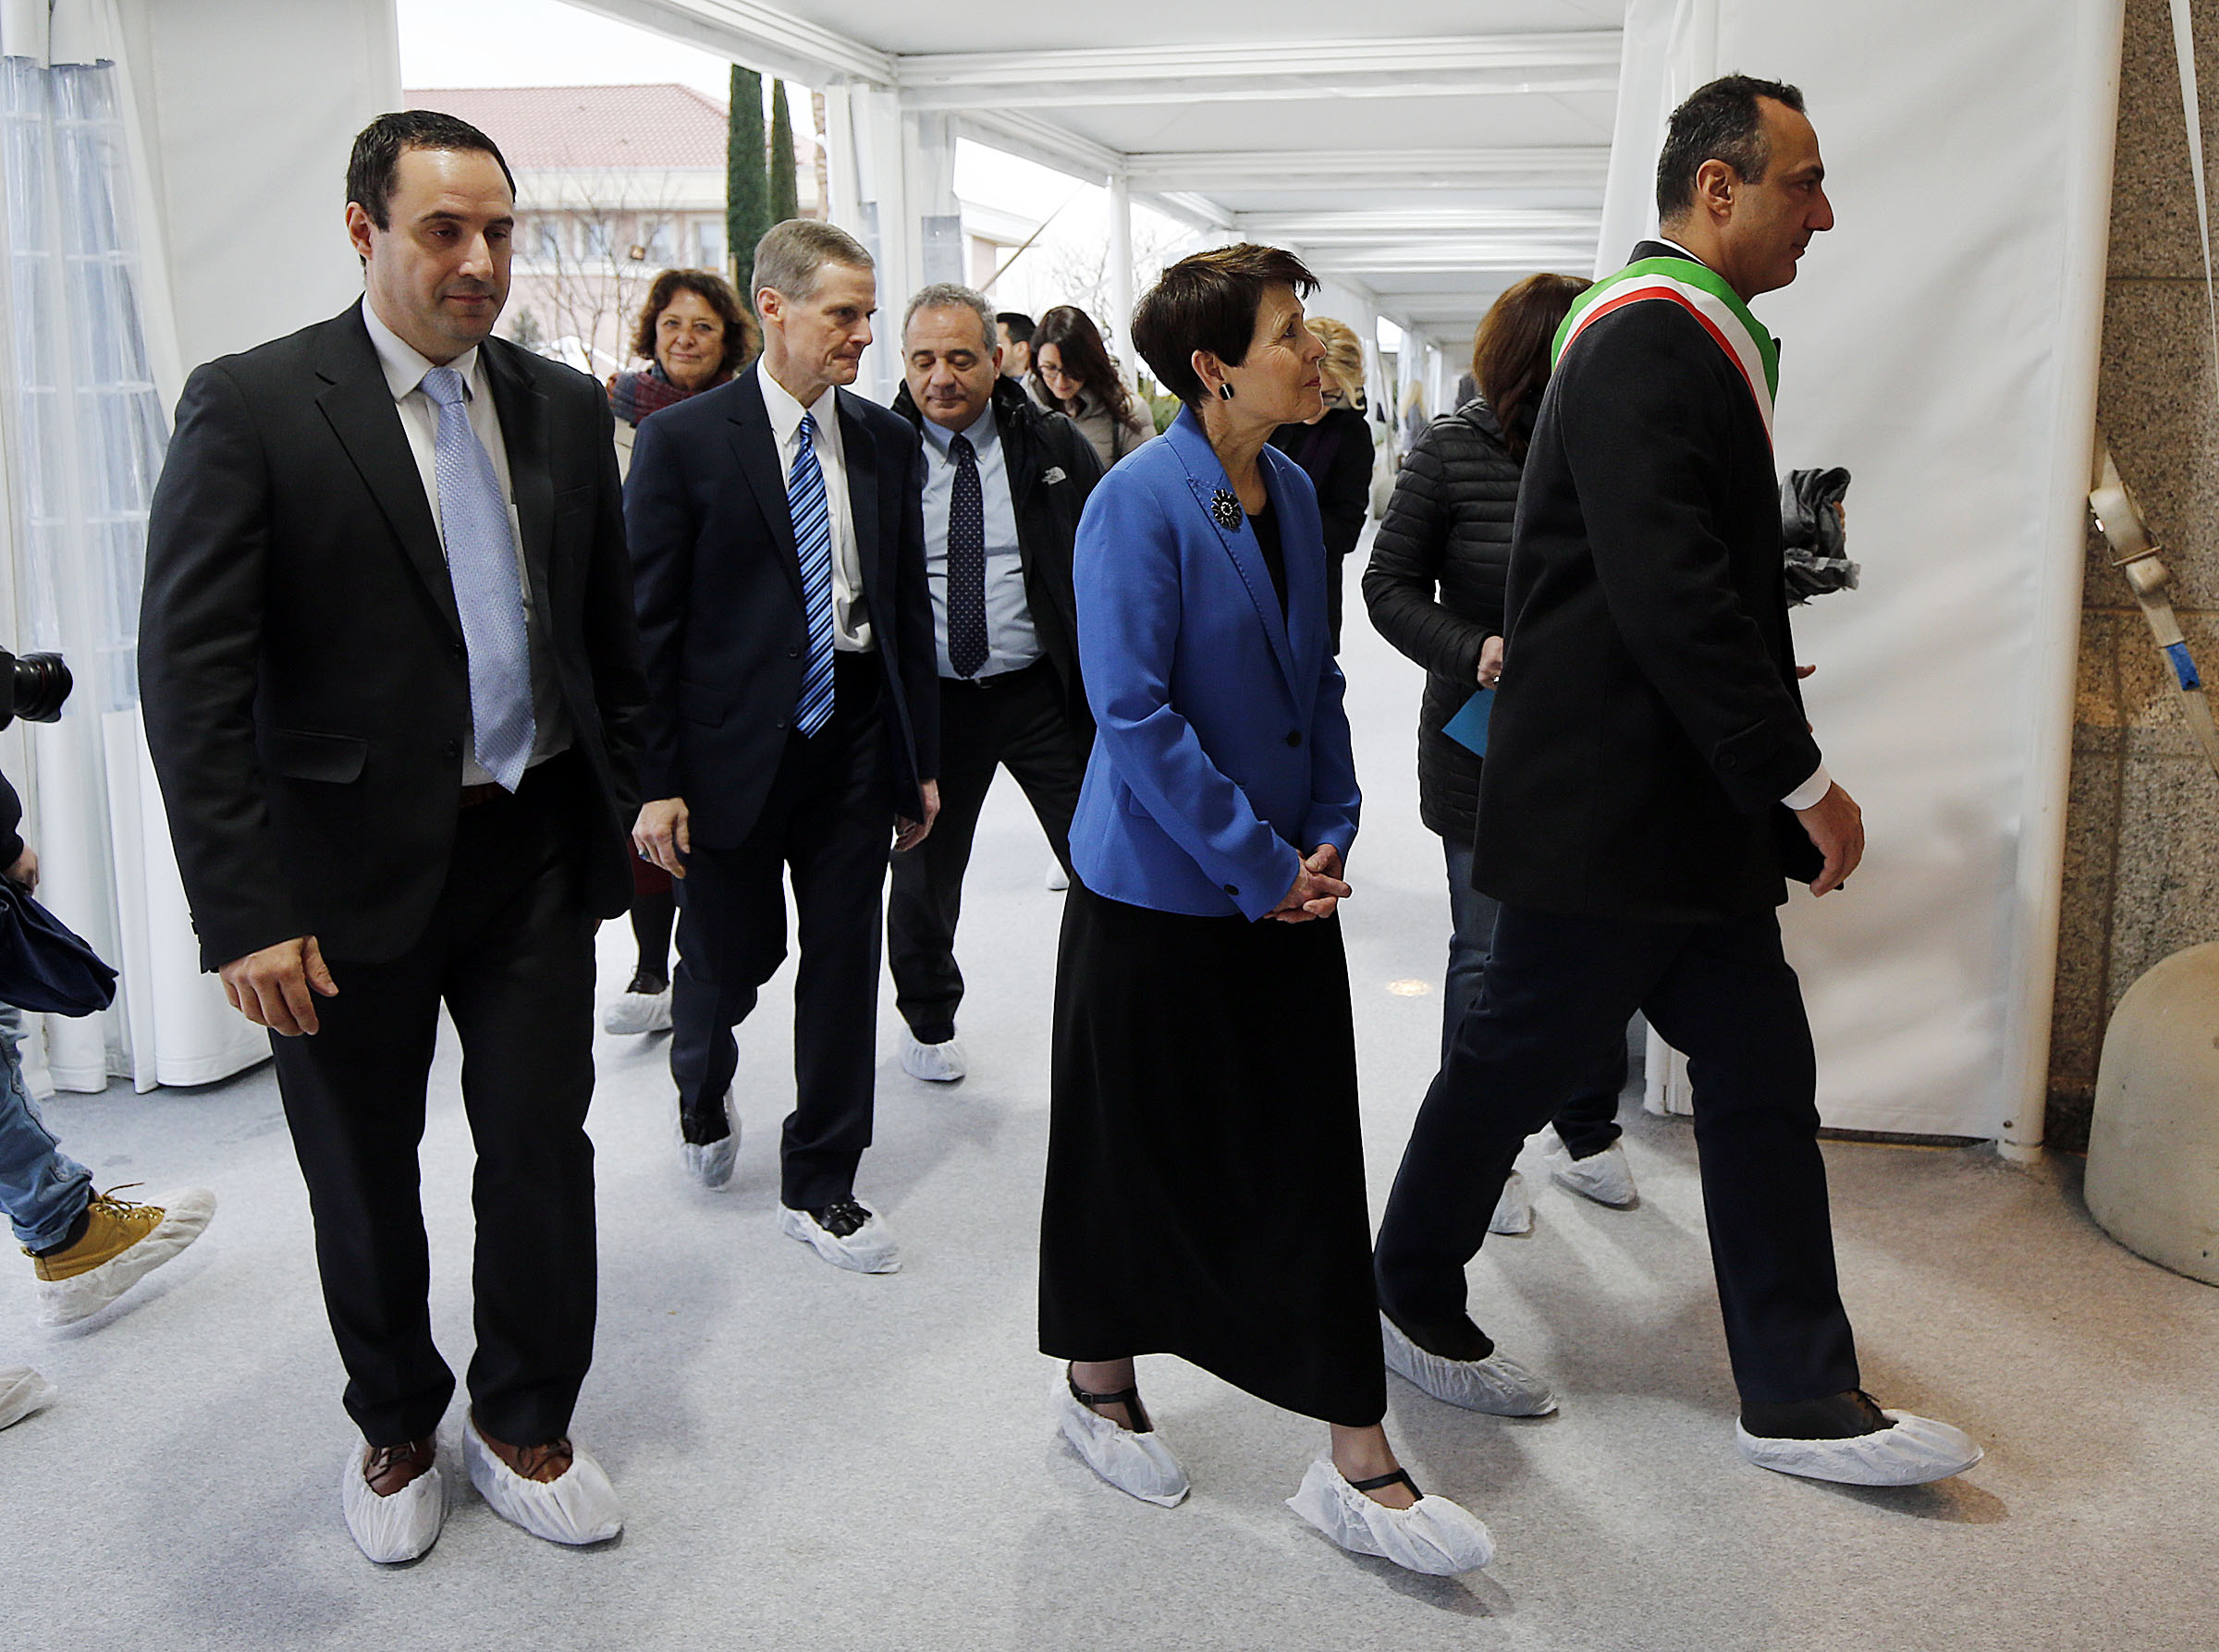 Elder David A. Bednar of the Quorum of the Twelve Apostles of The Church of Jesus Christ of Latter-day Saints and his wife, Sister Susan Bednar, guide a tour of local dignitaries into the Rome Italy Temple on Monday, Jan. 14, 2019.